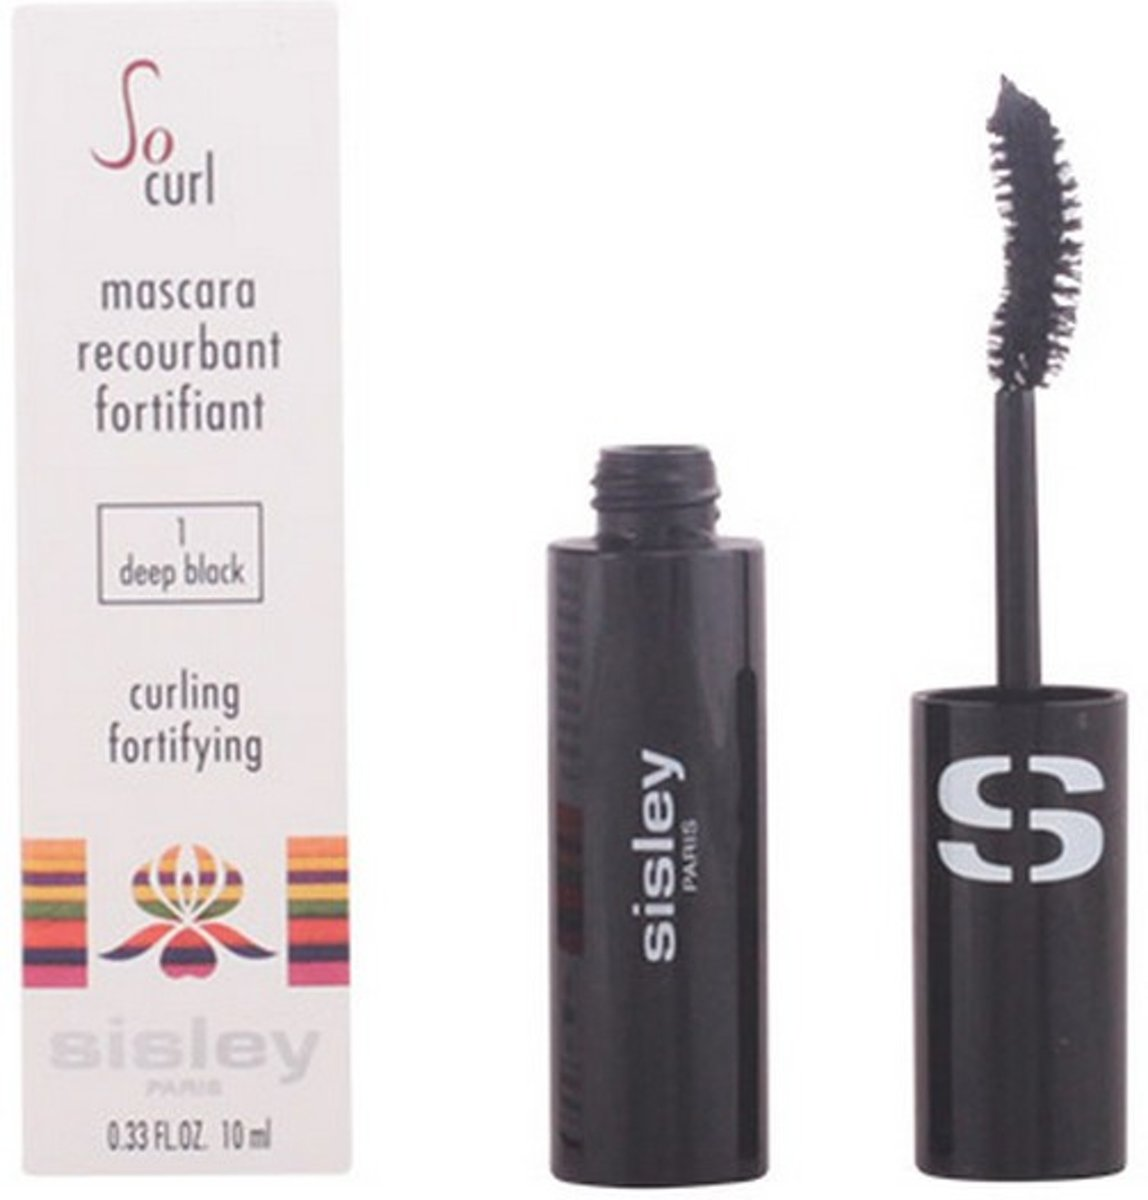 Sisley Phyto So Curl Mascara - 10 ml - Mascara